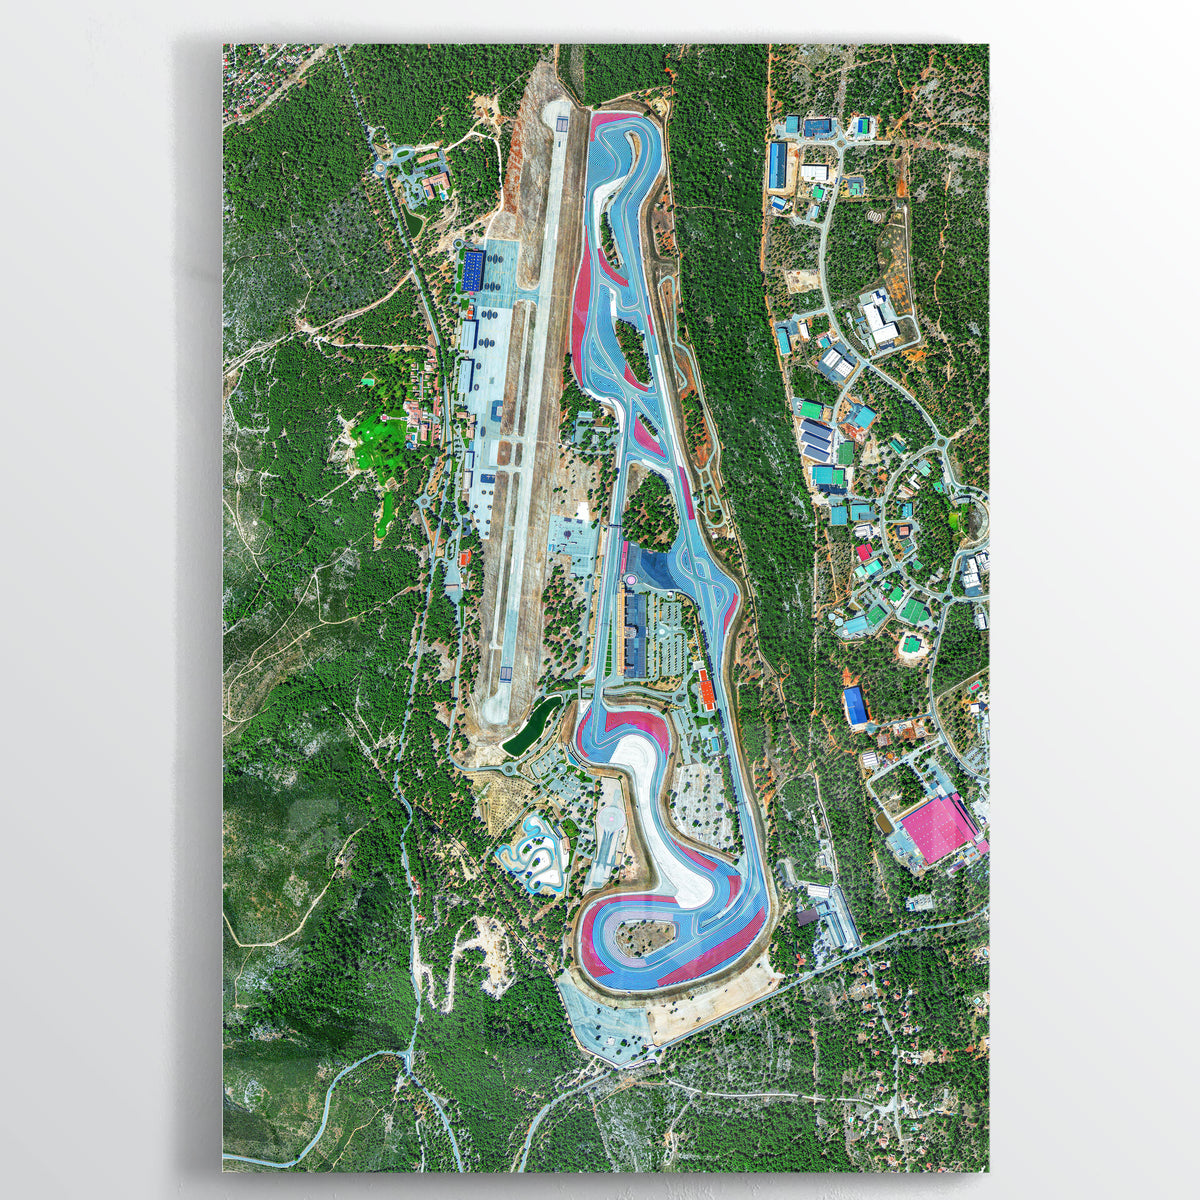 Circuit Paul Ricard Earth Photography - Floating Acrylic Art - Point Two Design